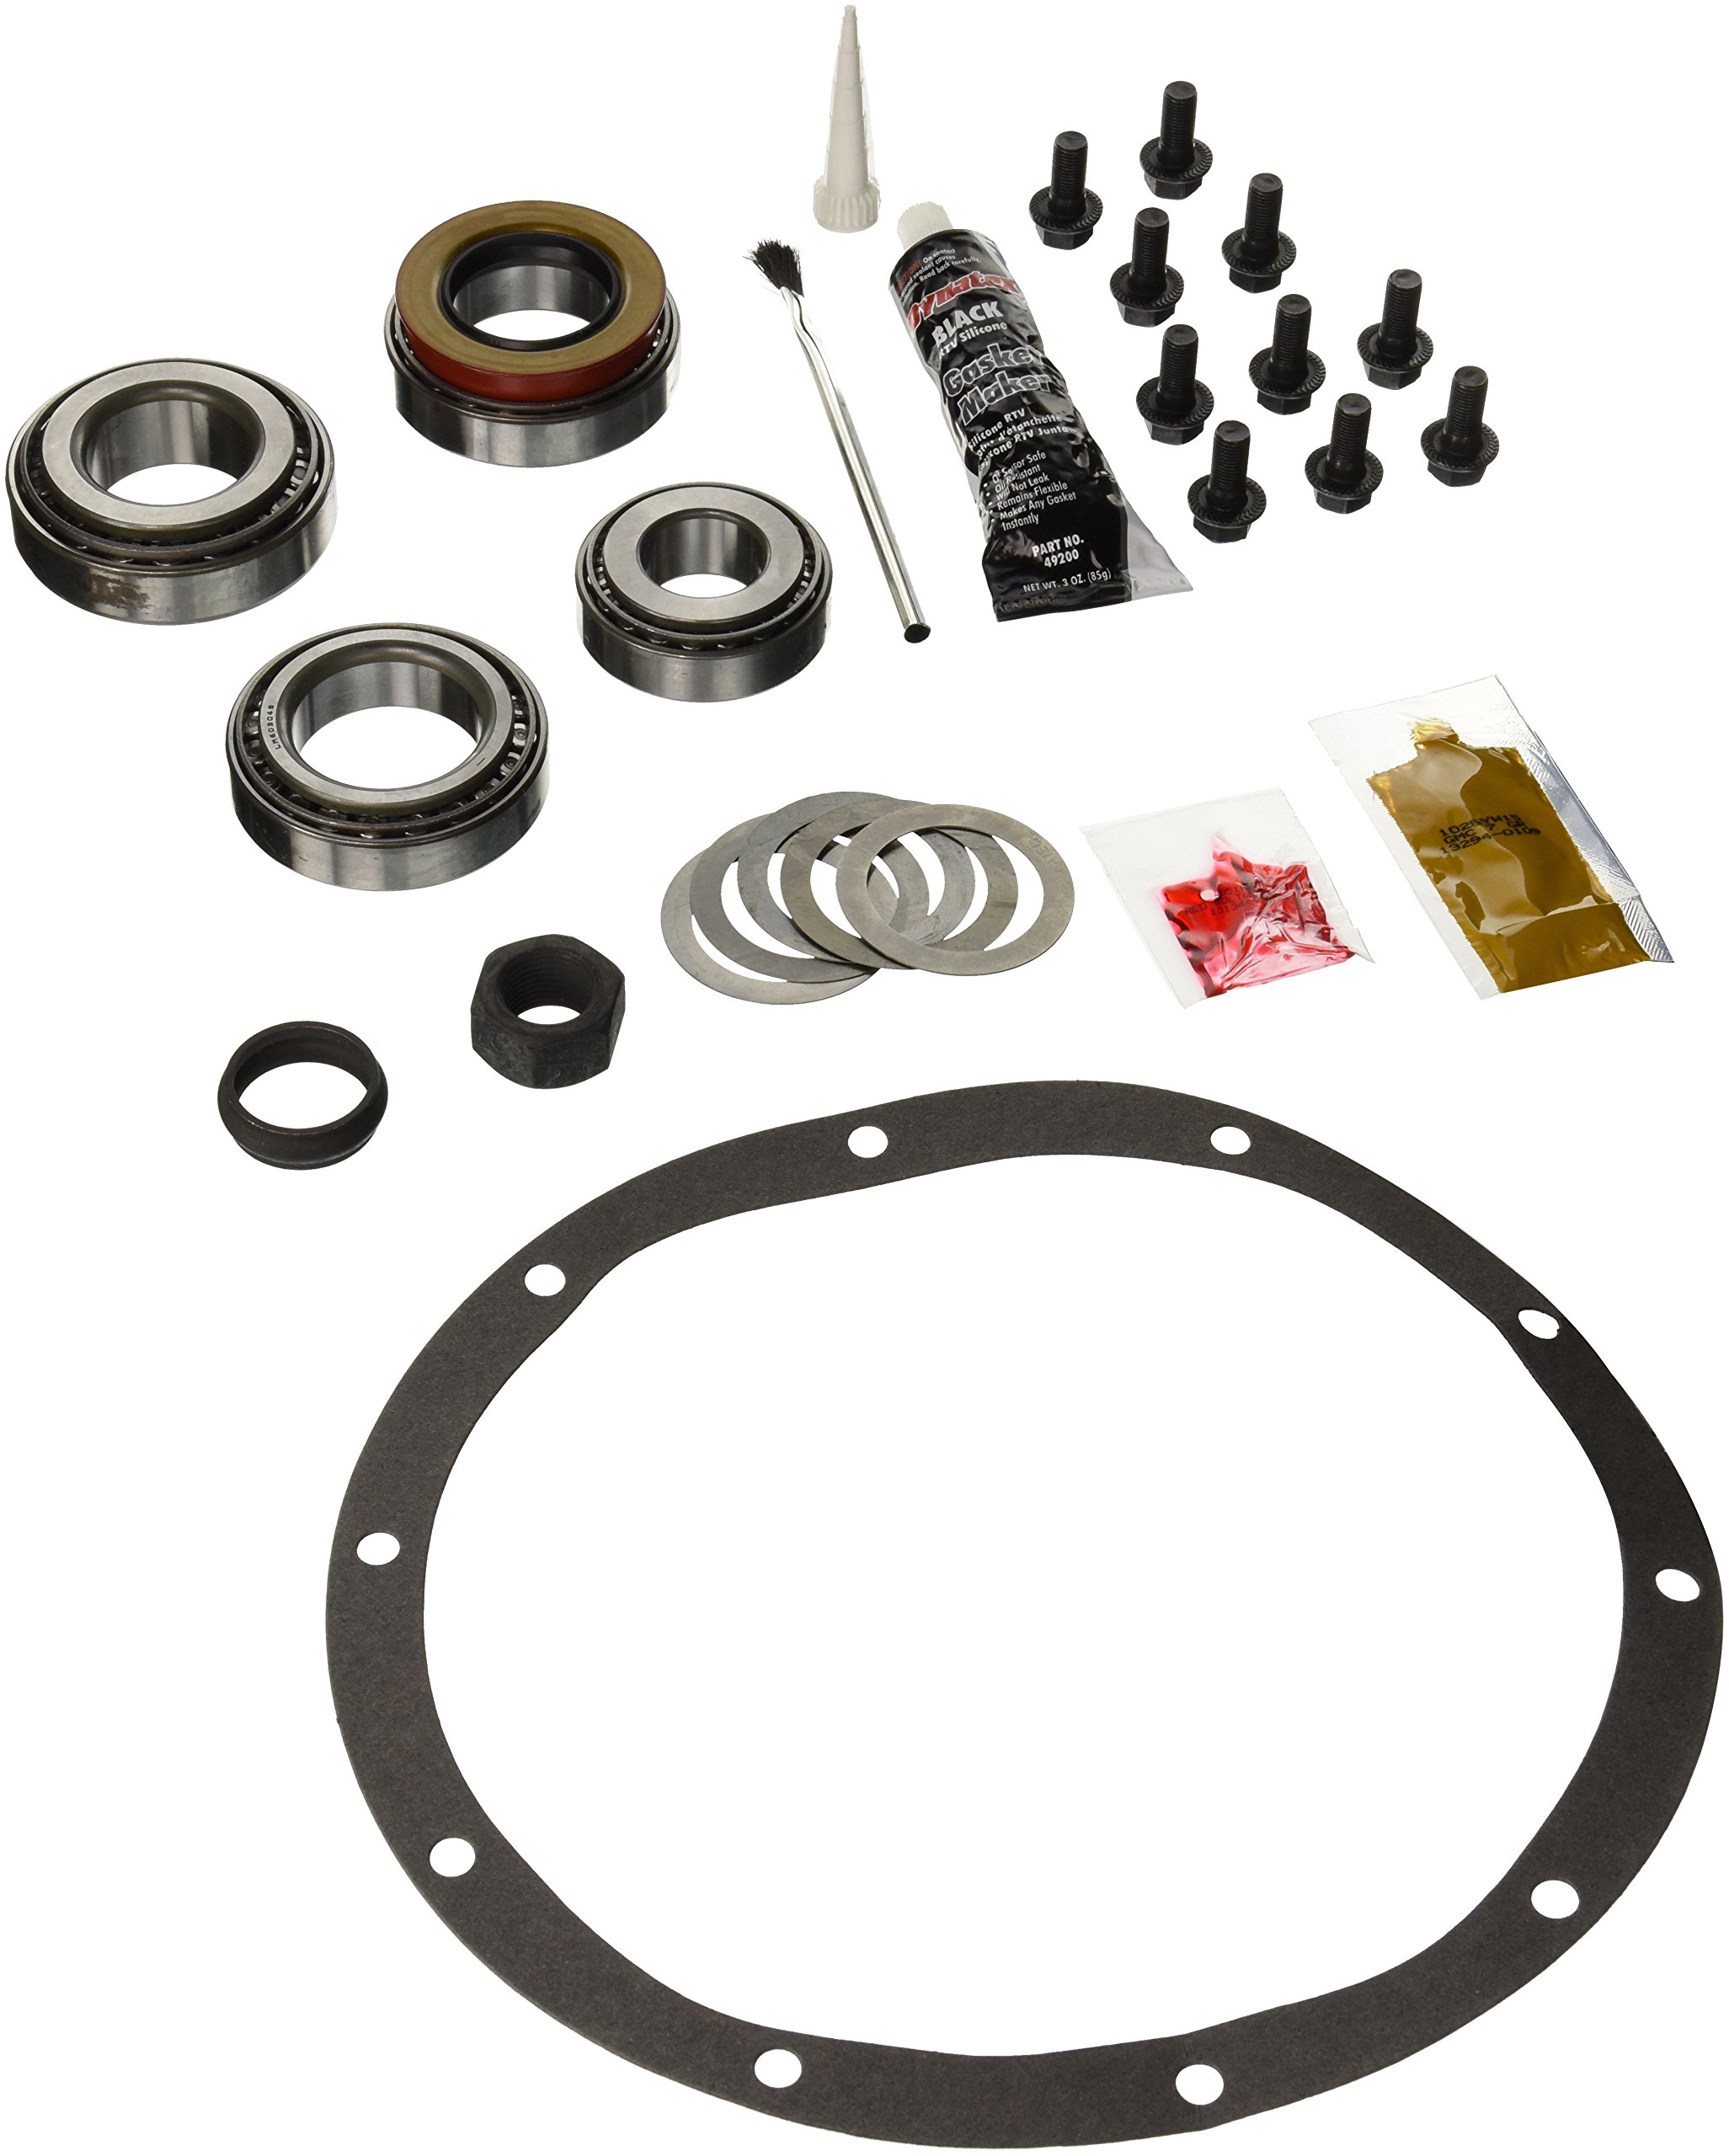 Motive Gear R9.25RLMKT Master Bearing Kit with Timken Bearings (Chrysler 9.25'' '01-'09) by Motive Gear